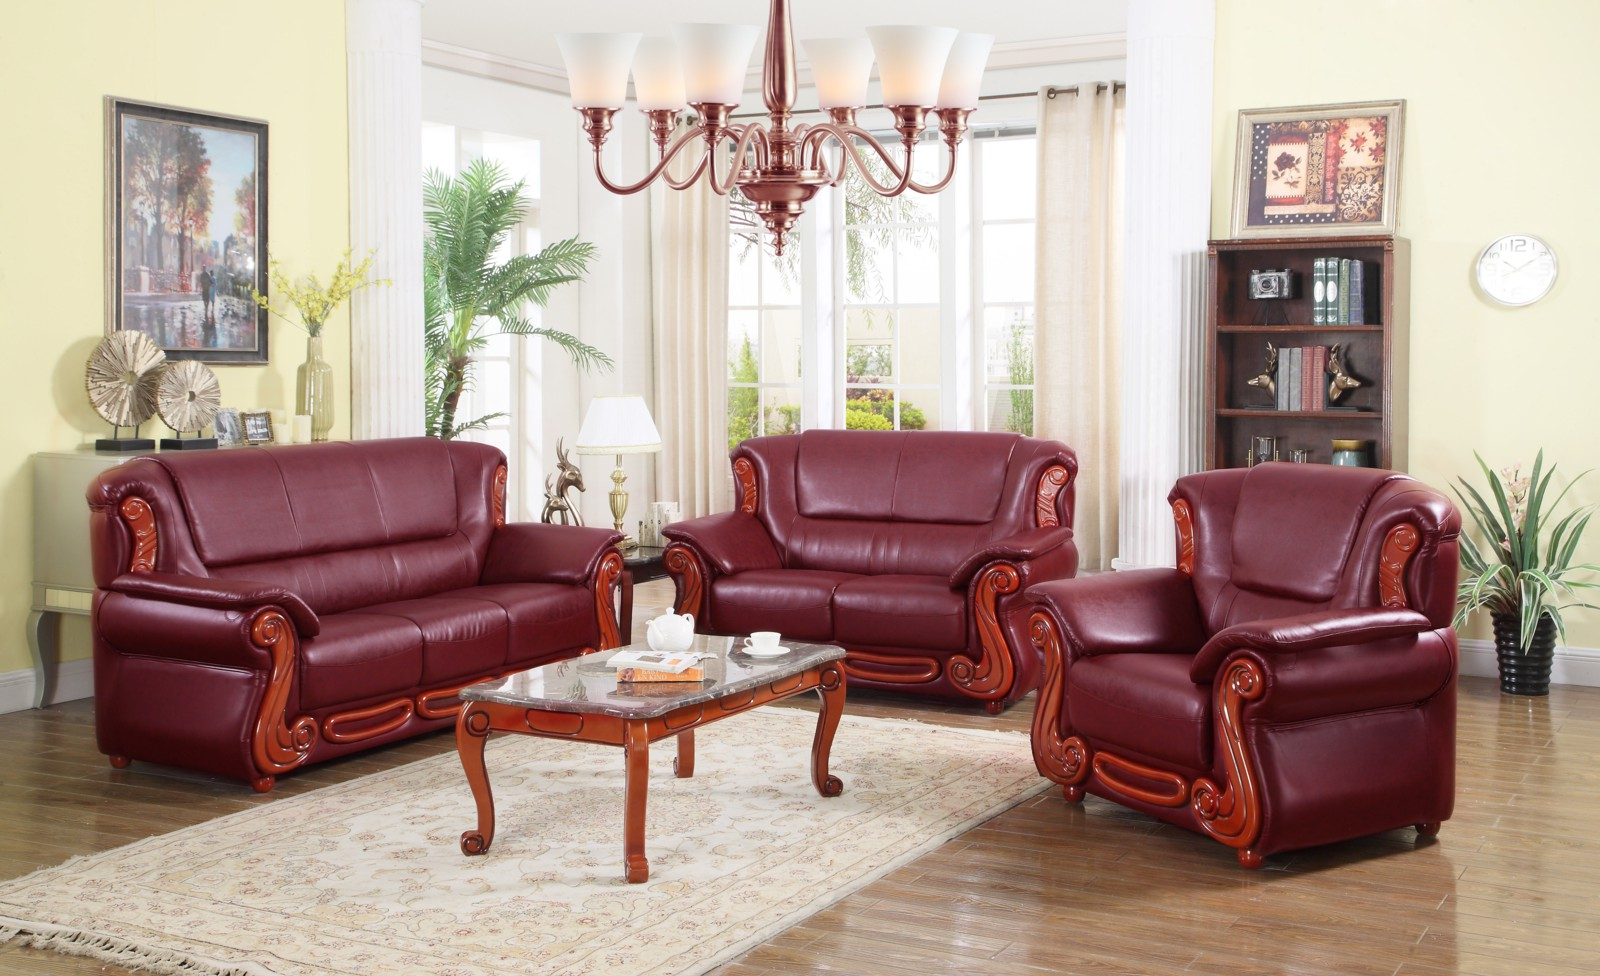 Meridian 632 2 piece living room set in burgundy for 3 piece living room set cheap